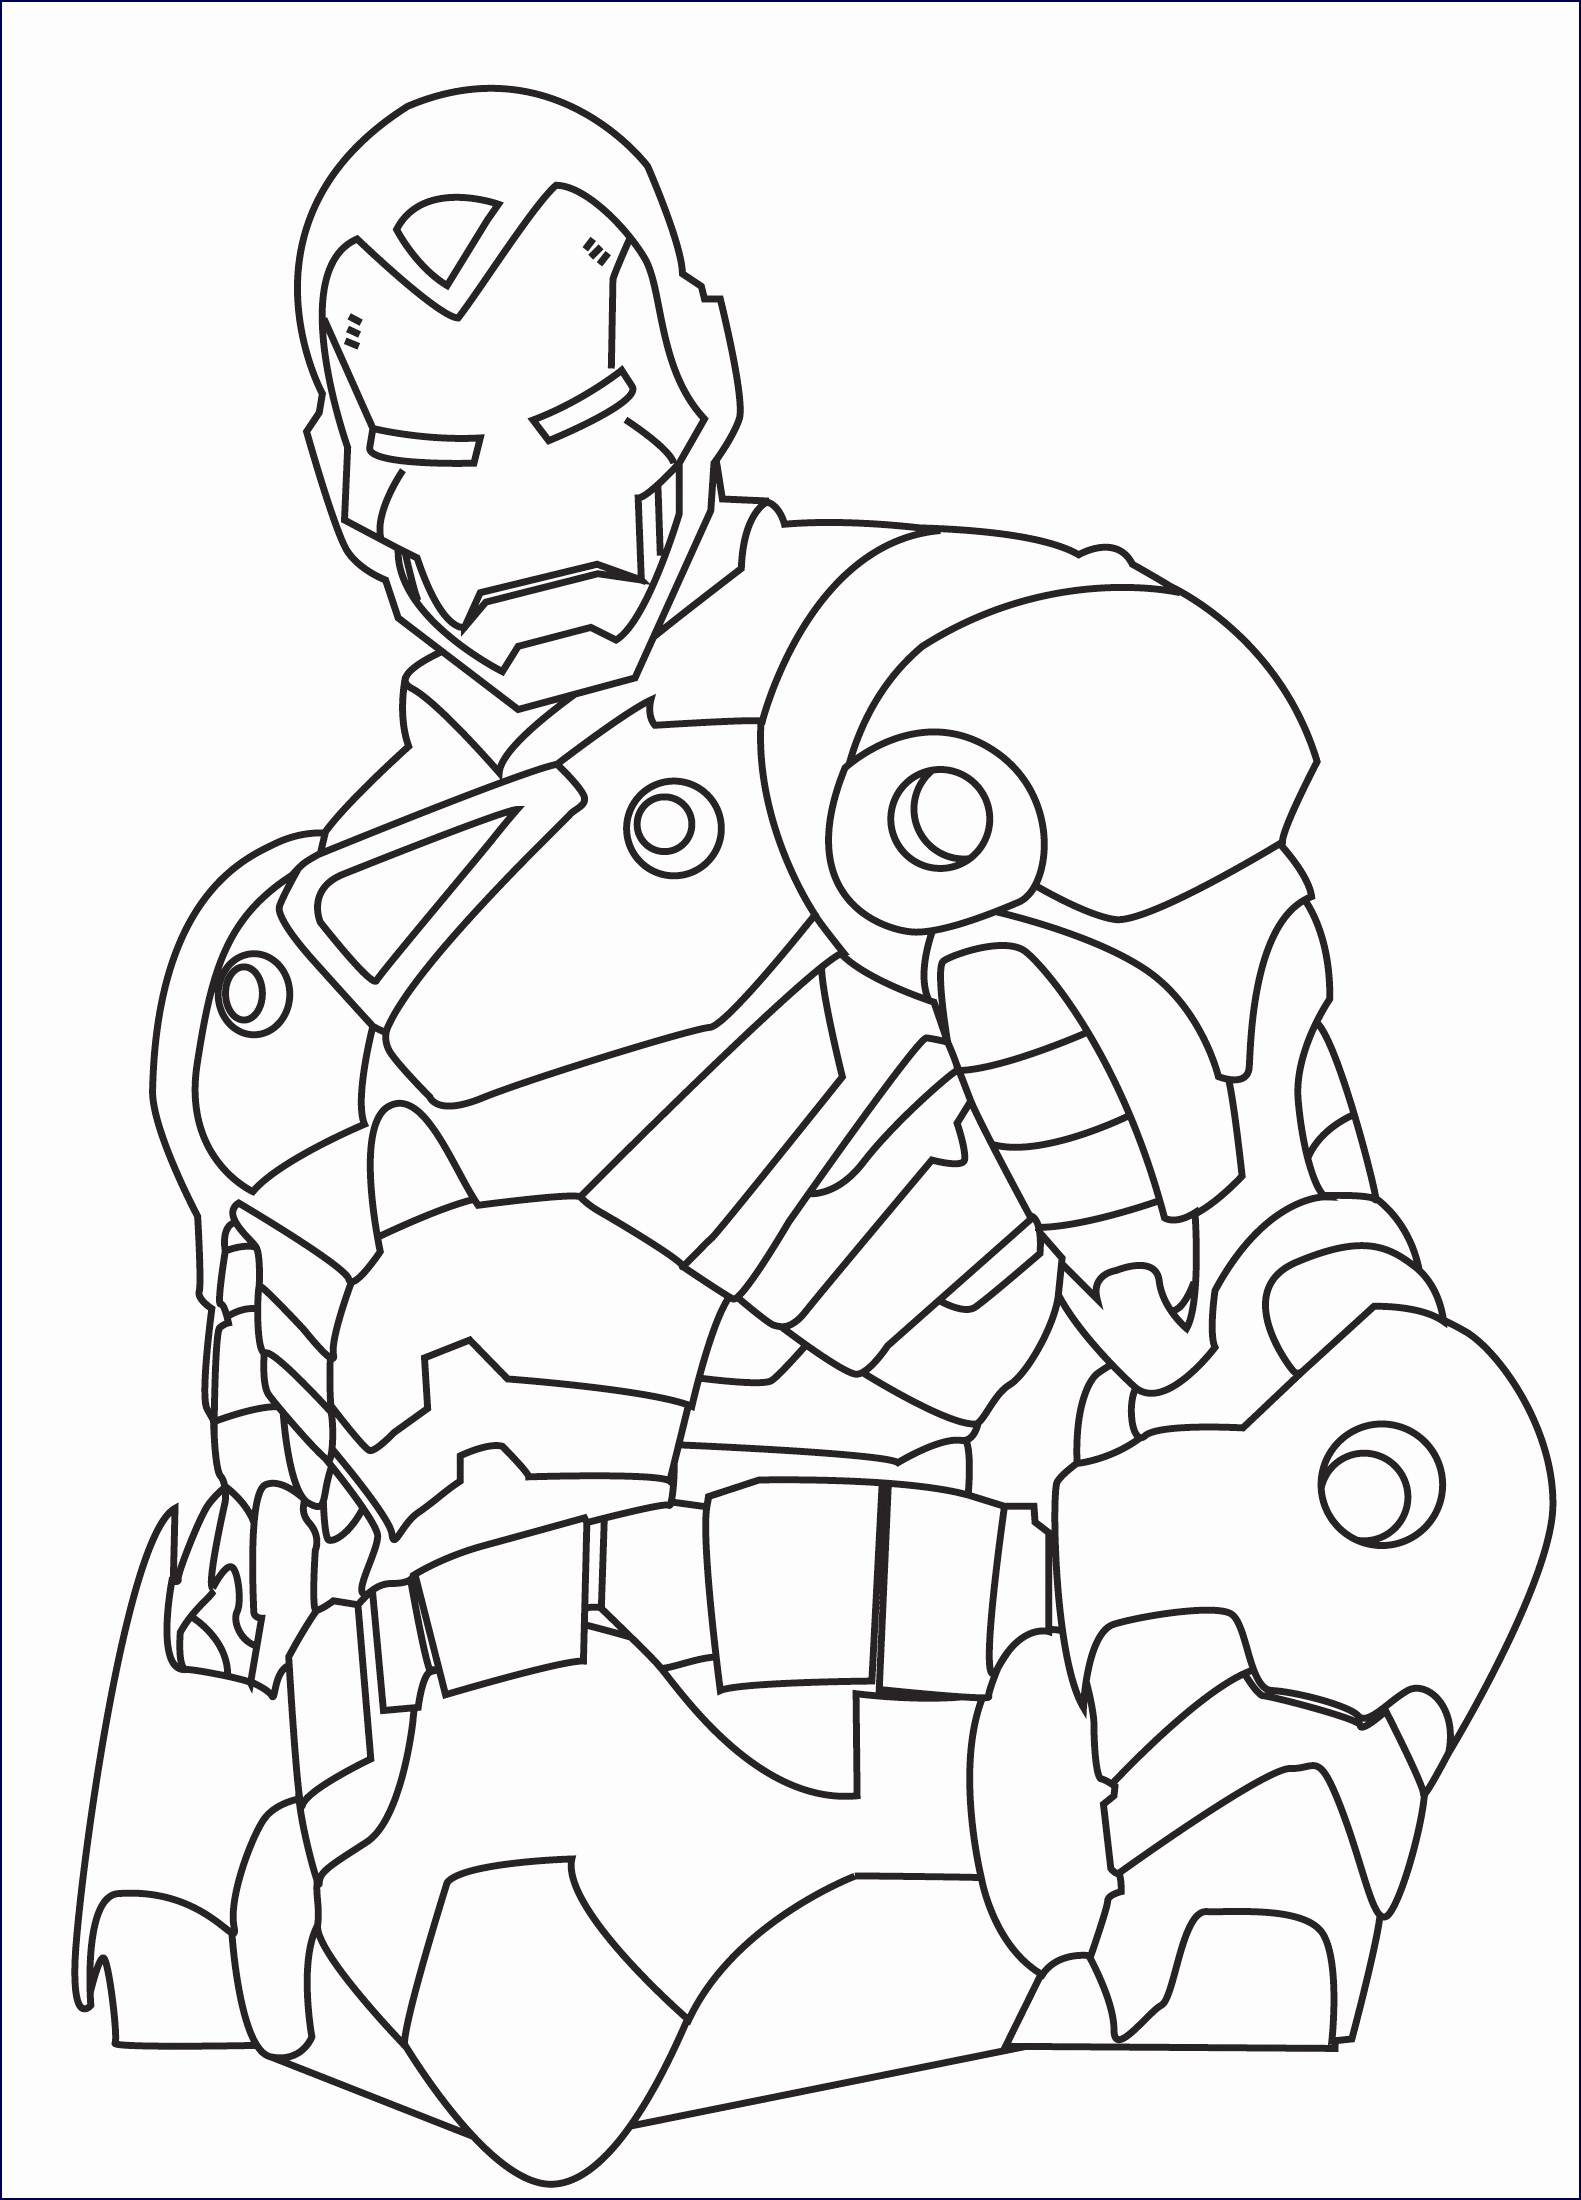 LEGO Marvel Avengers - Coloring pages for kids | 2200x1581